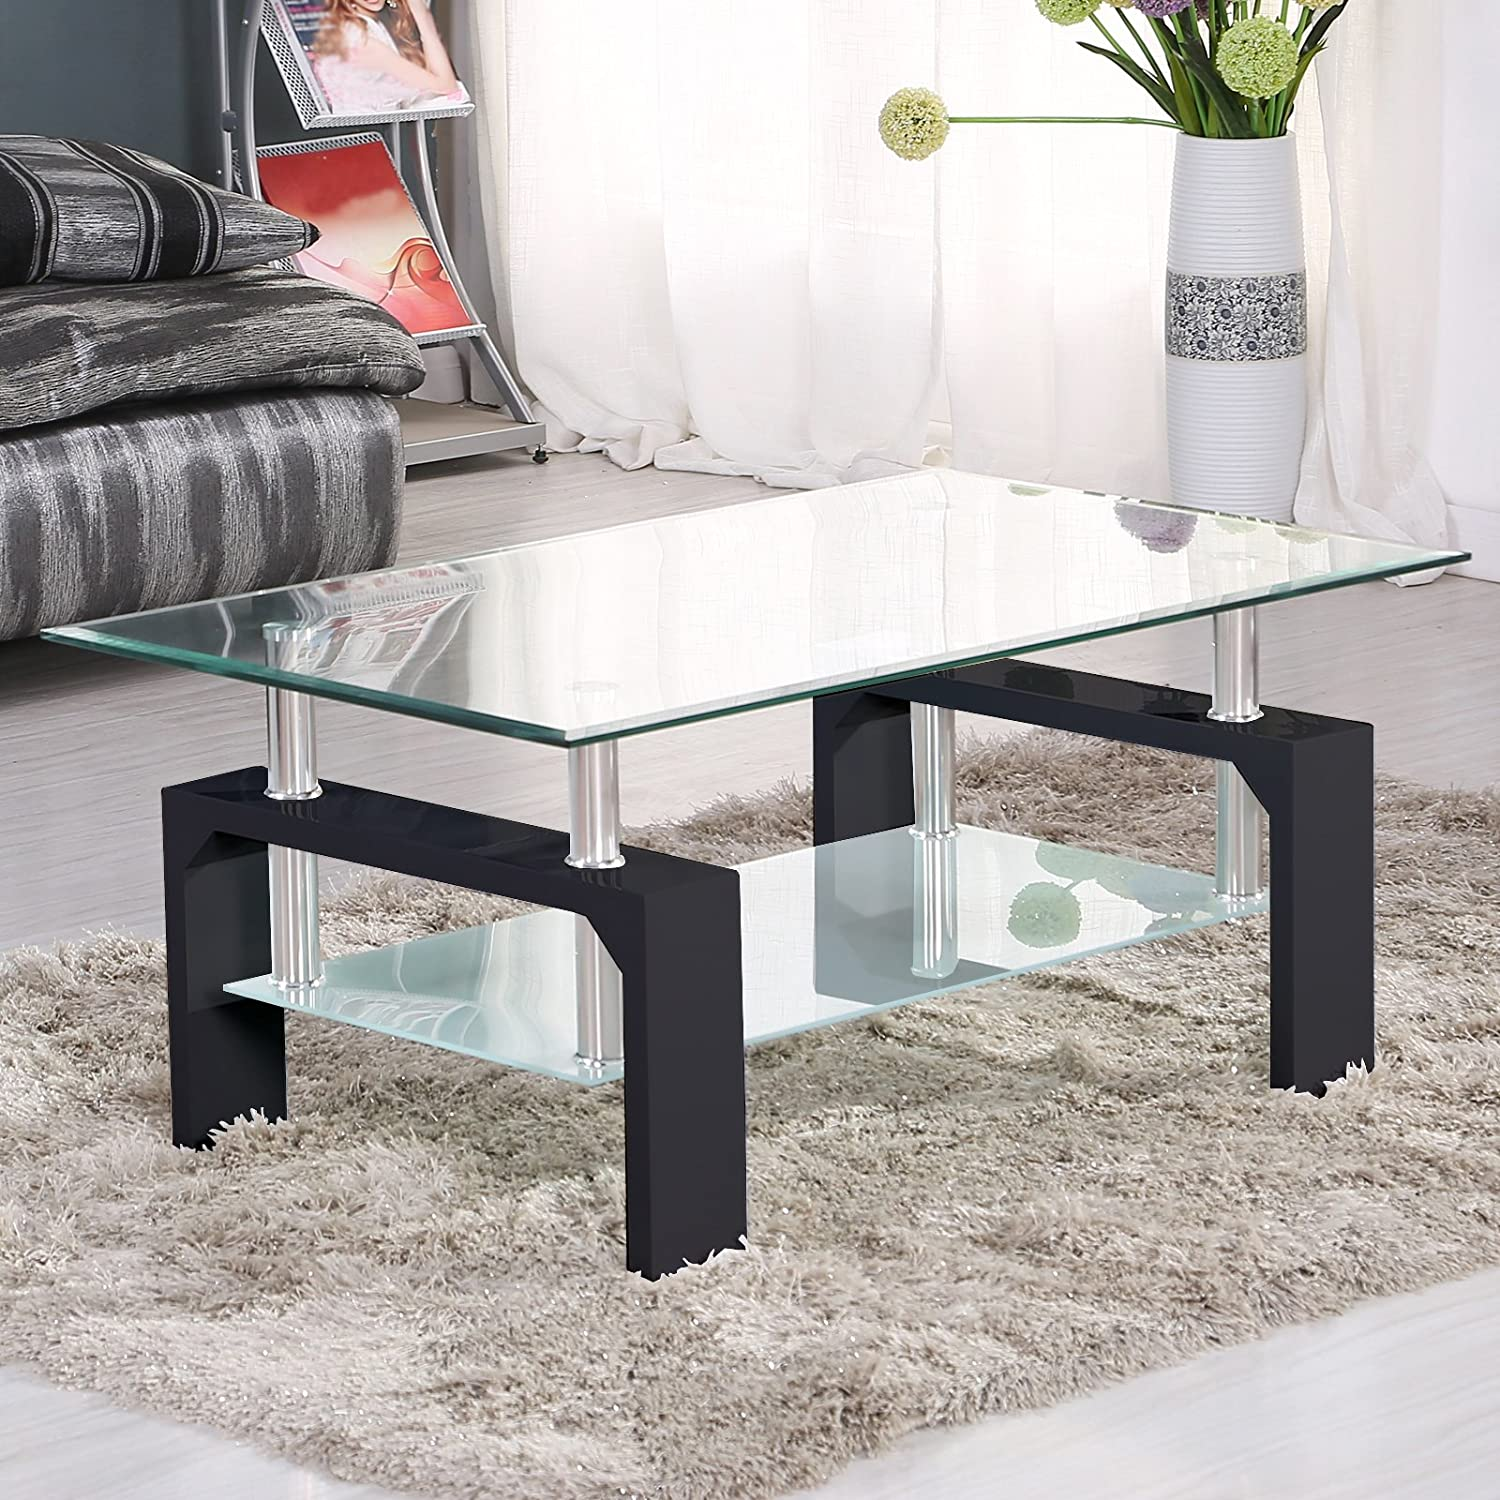 Beautiful Amazon.com: VIRREA Rectangular Glass Coffee Table Shelf Wood Living Room  Furniture Chrome Base Black: Kitchen U0026 Dining